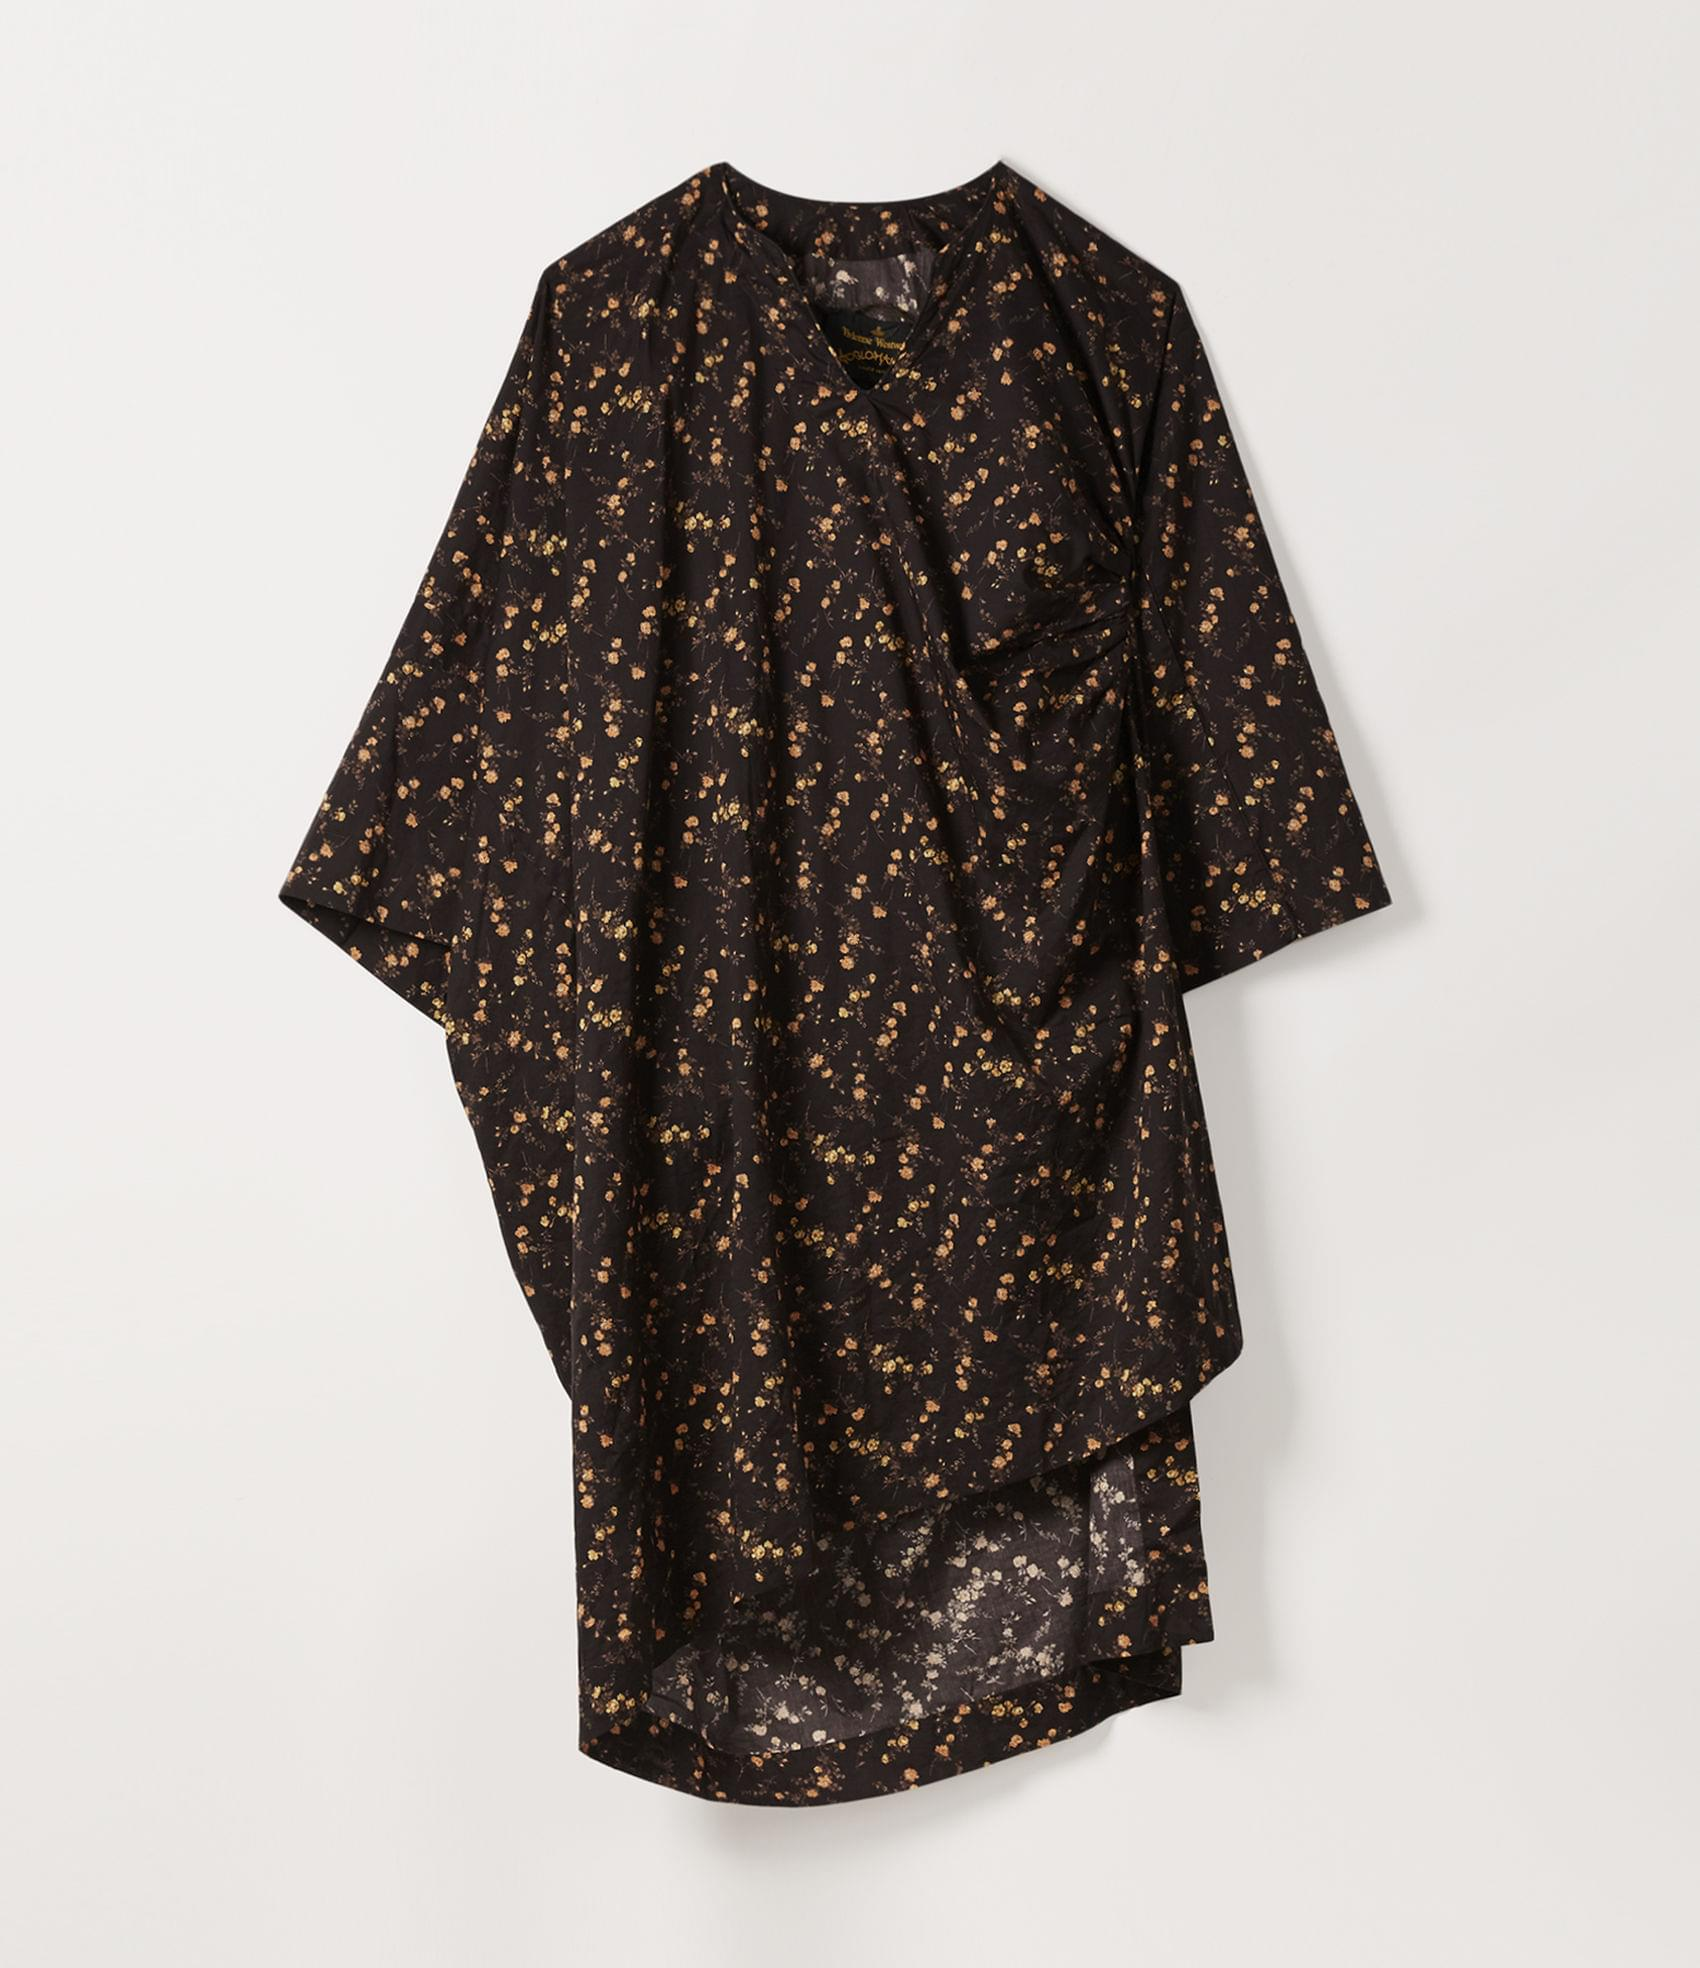 Vivienne Westwood MINI KAFTAN DRESS BROWN/BLACK